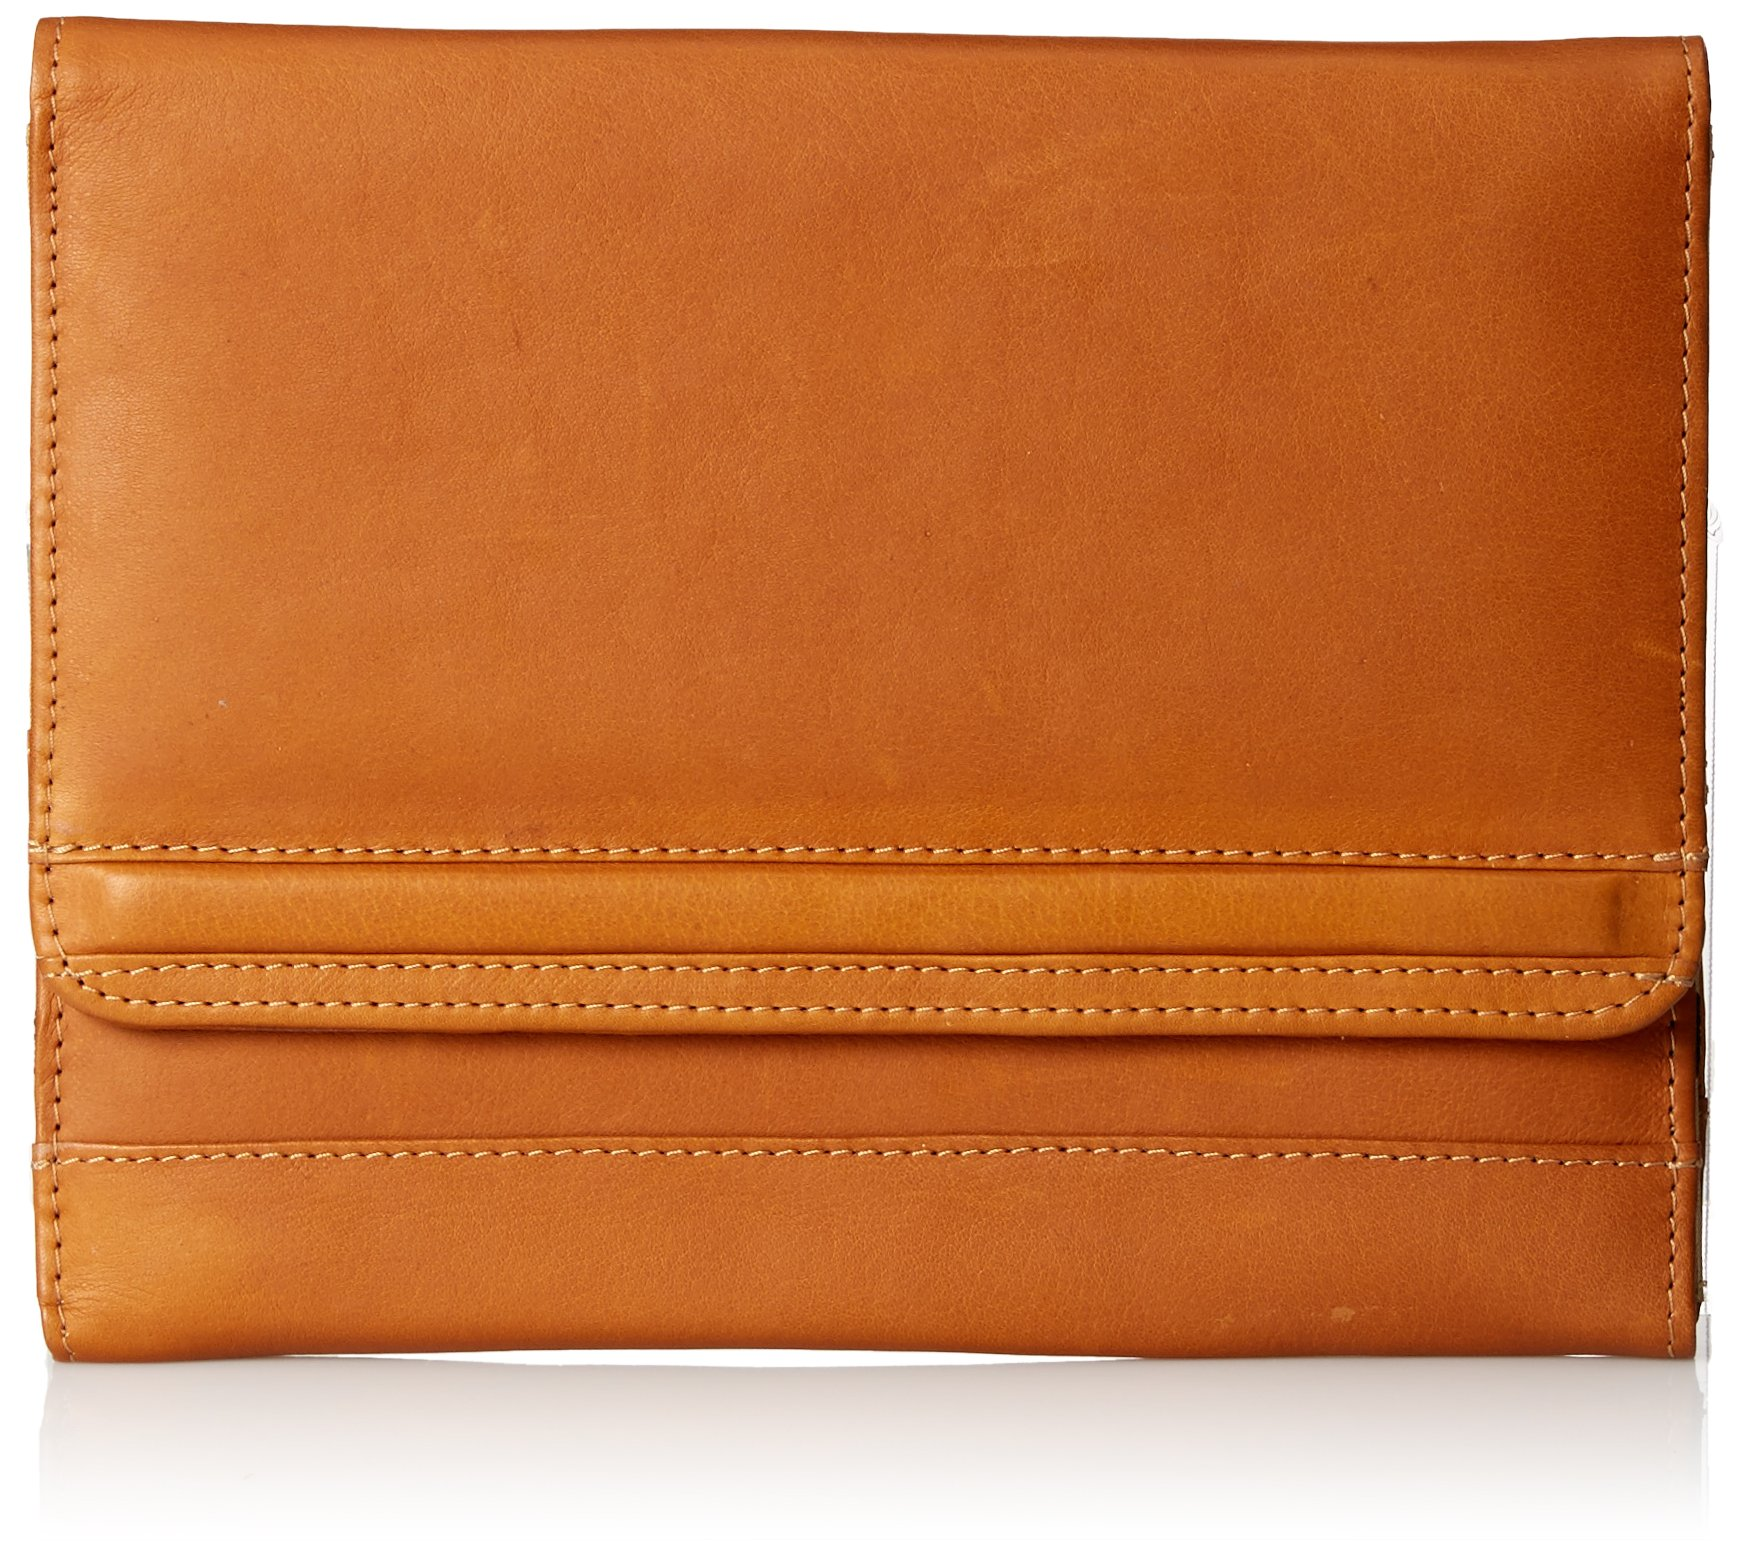 Piel Leather iPad Air Envelope Case Stand, Saddle, One Size by Piel Leather